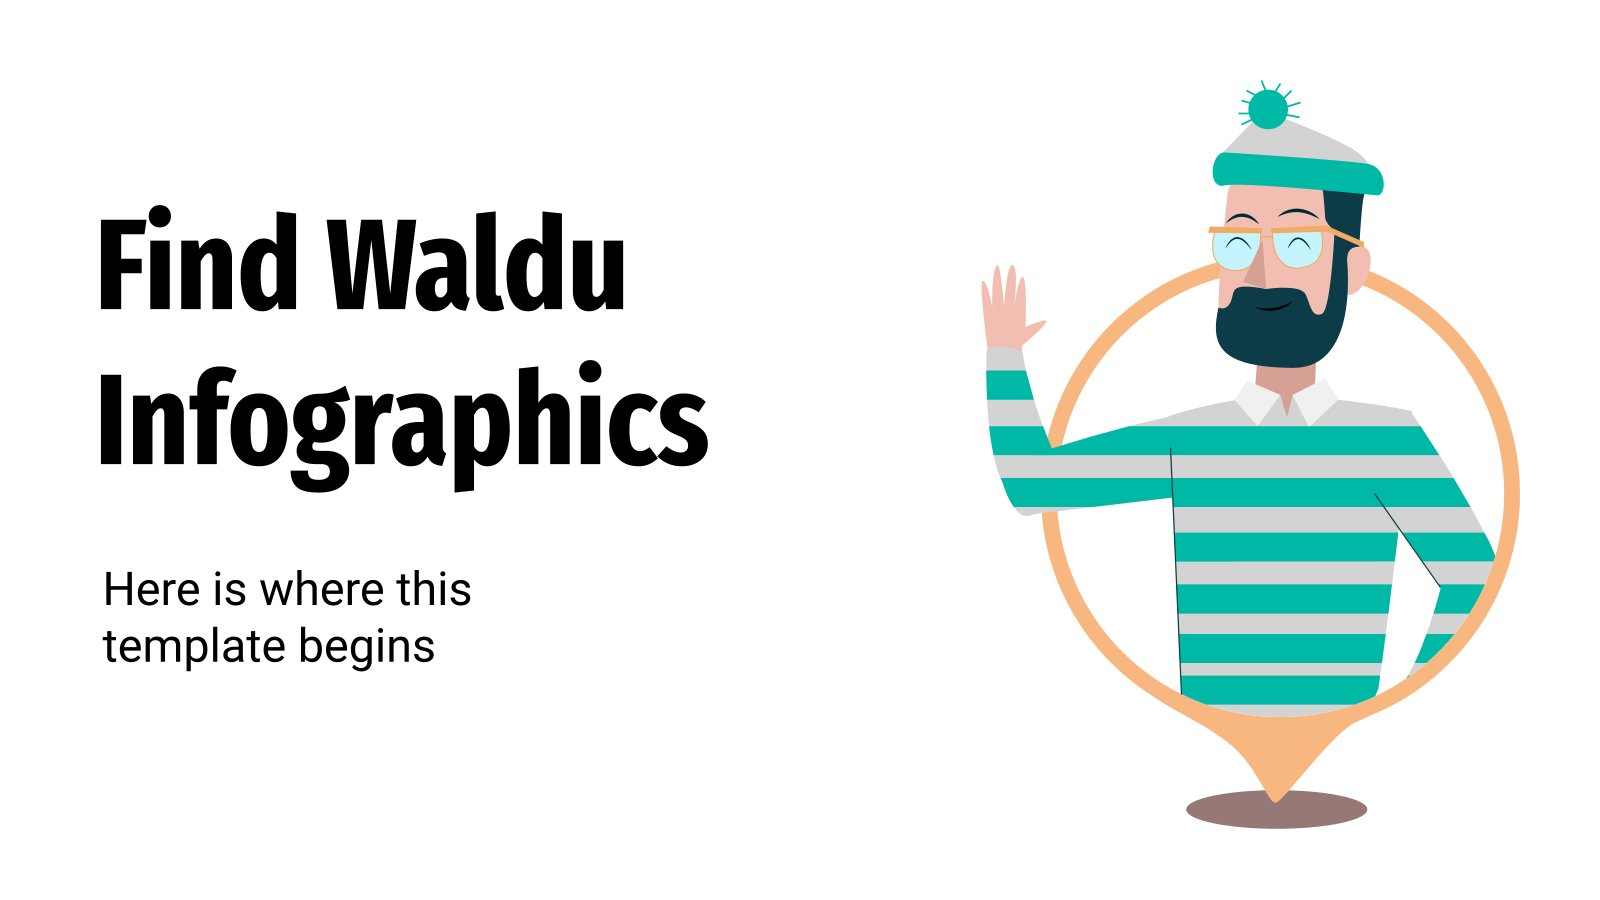 Find Waldu Infographics presentation template